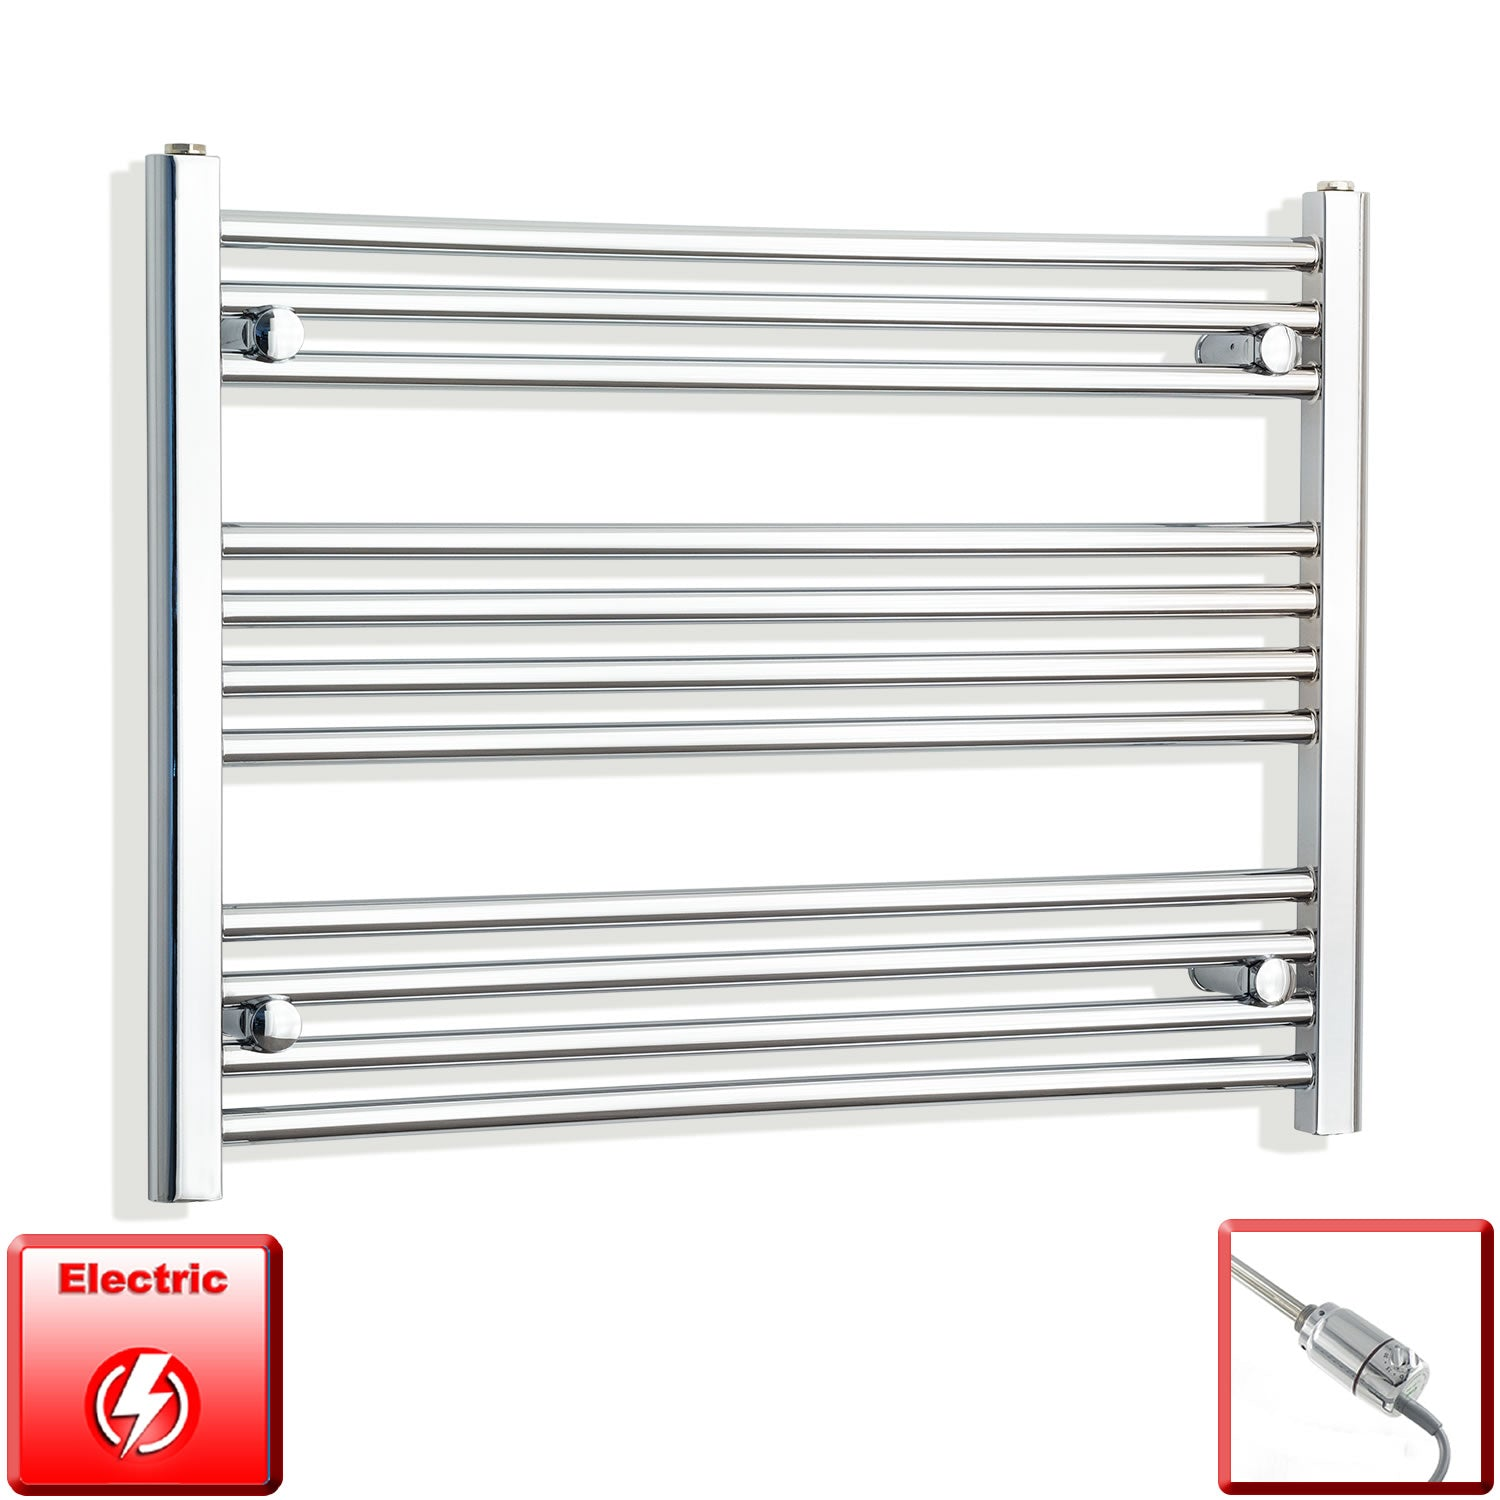 700mm Wide 600mm High Pre-Filled Chrome Electric Towel Rail Radiator With Thermostatic GT Element